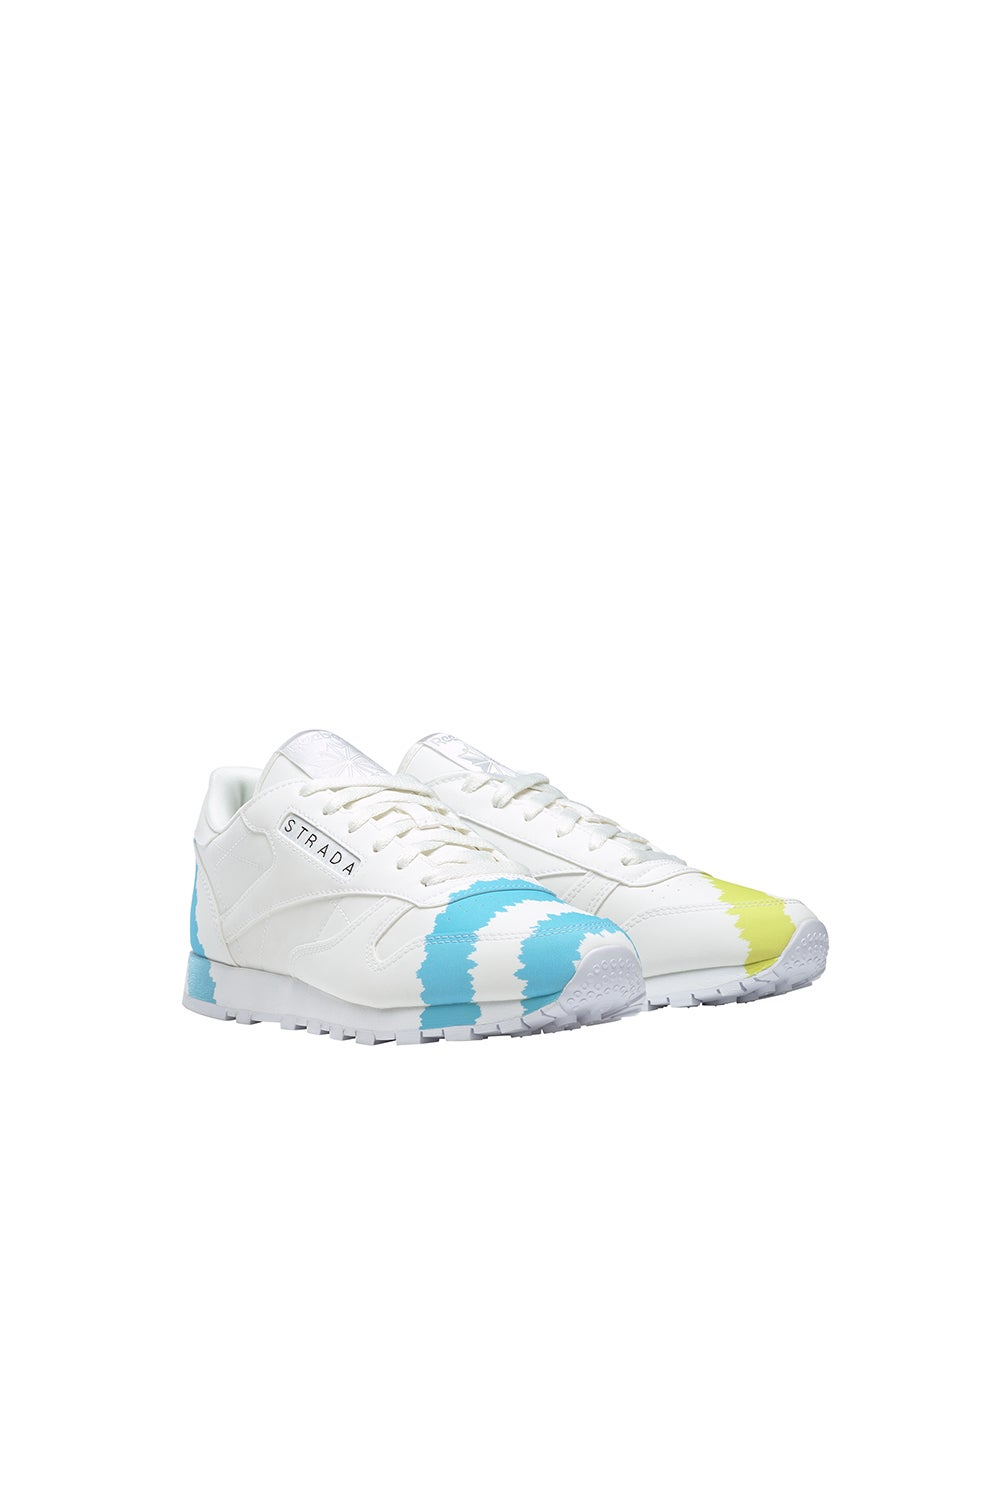 Reebok Collina Strada Classic Leather Shoes White